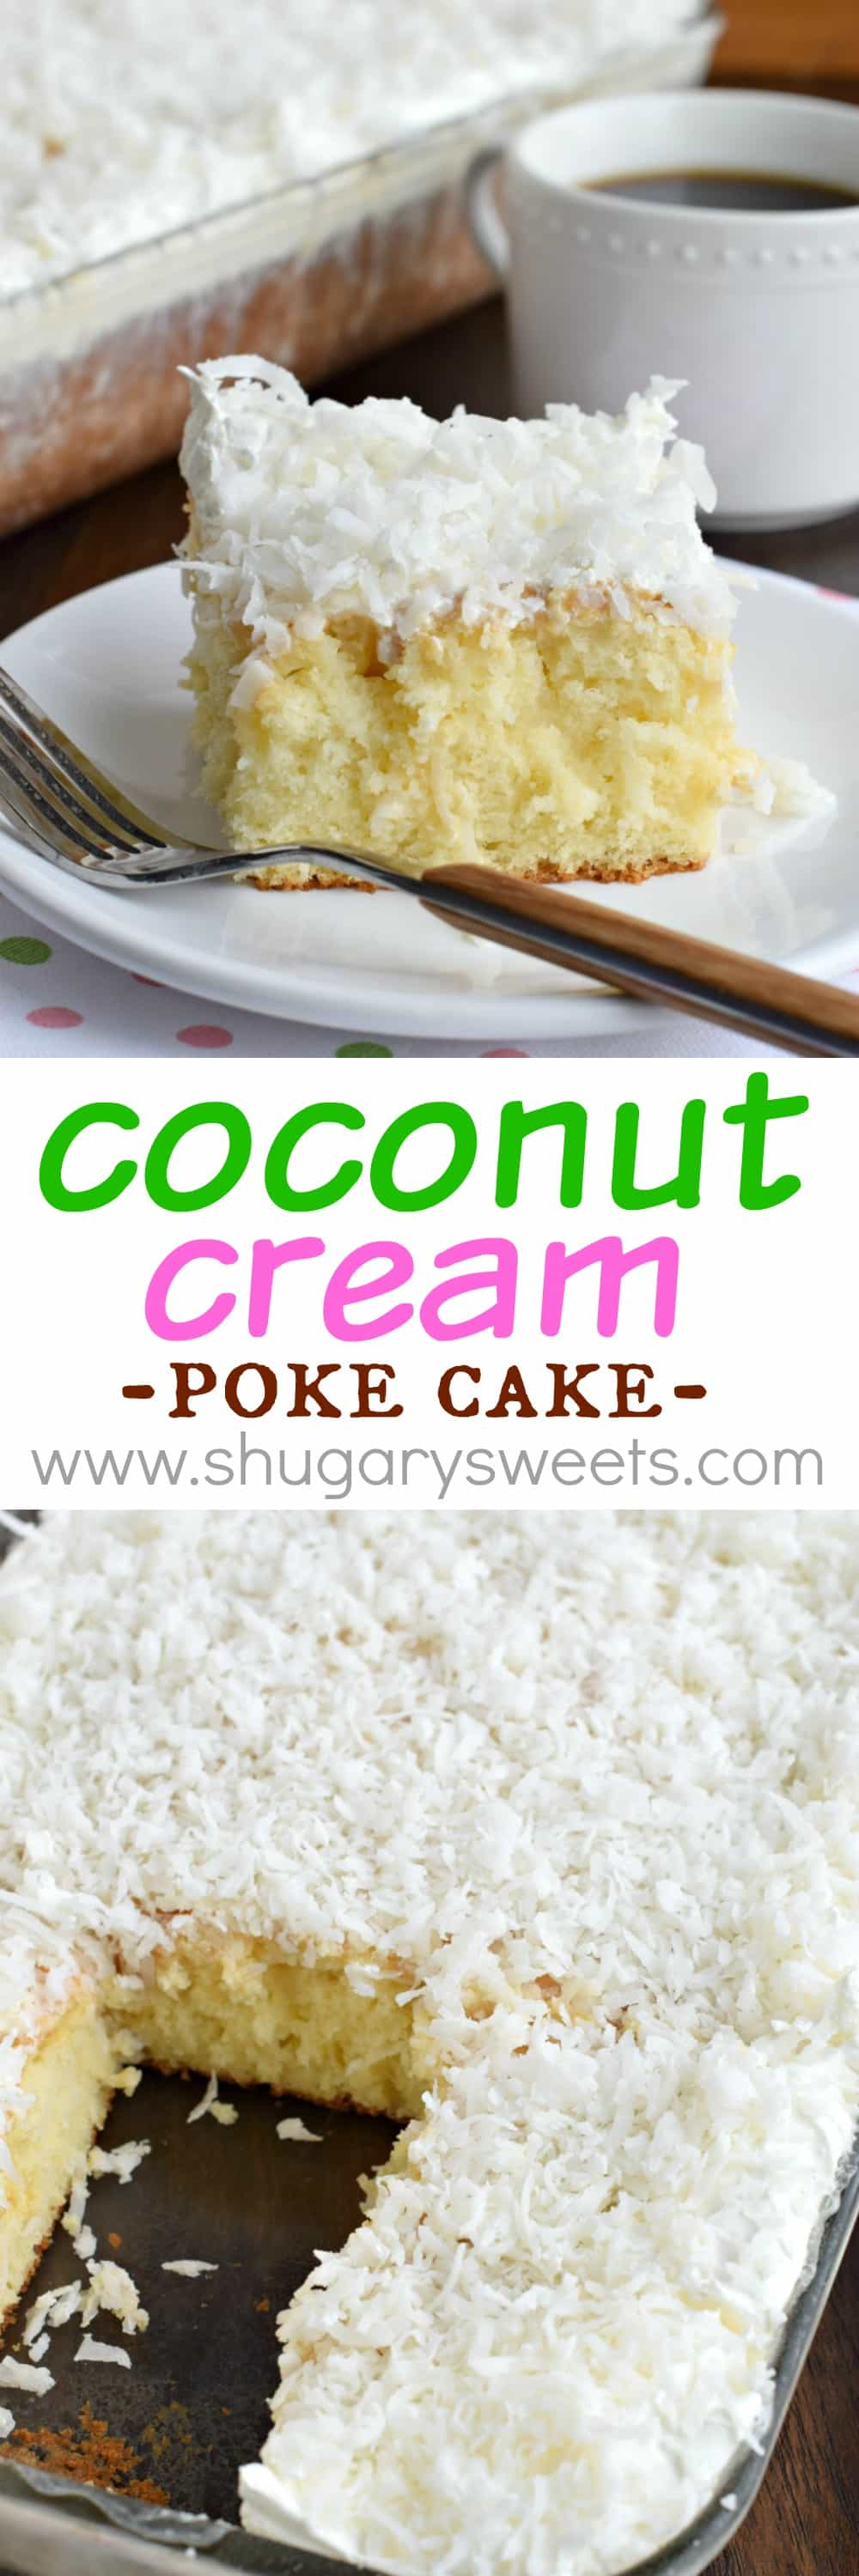 Coconut Cream Poke Cake Shugary Sweets